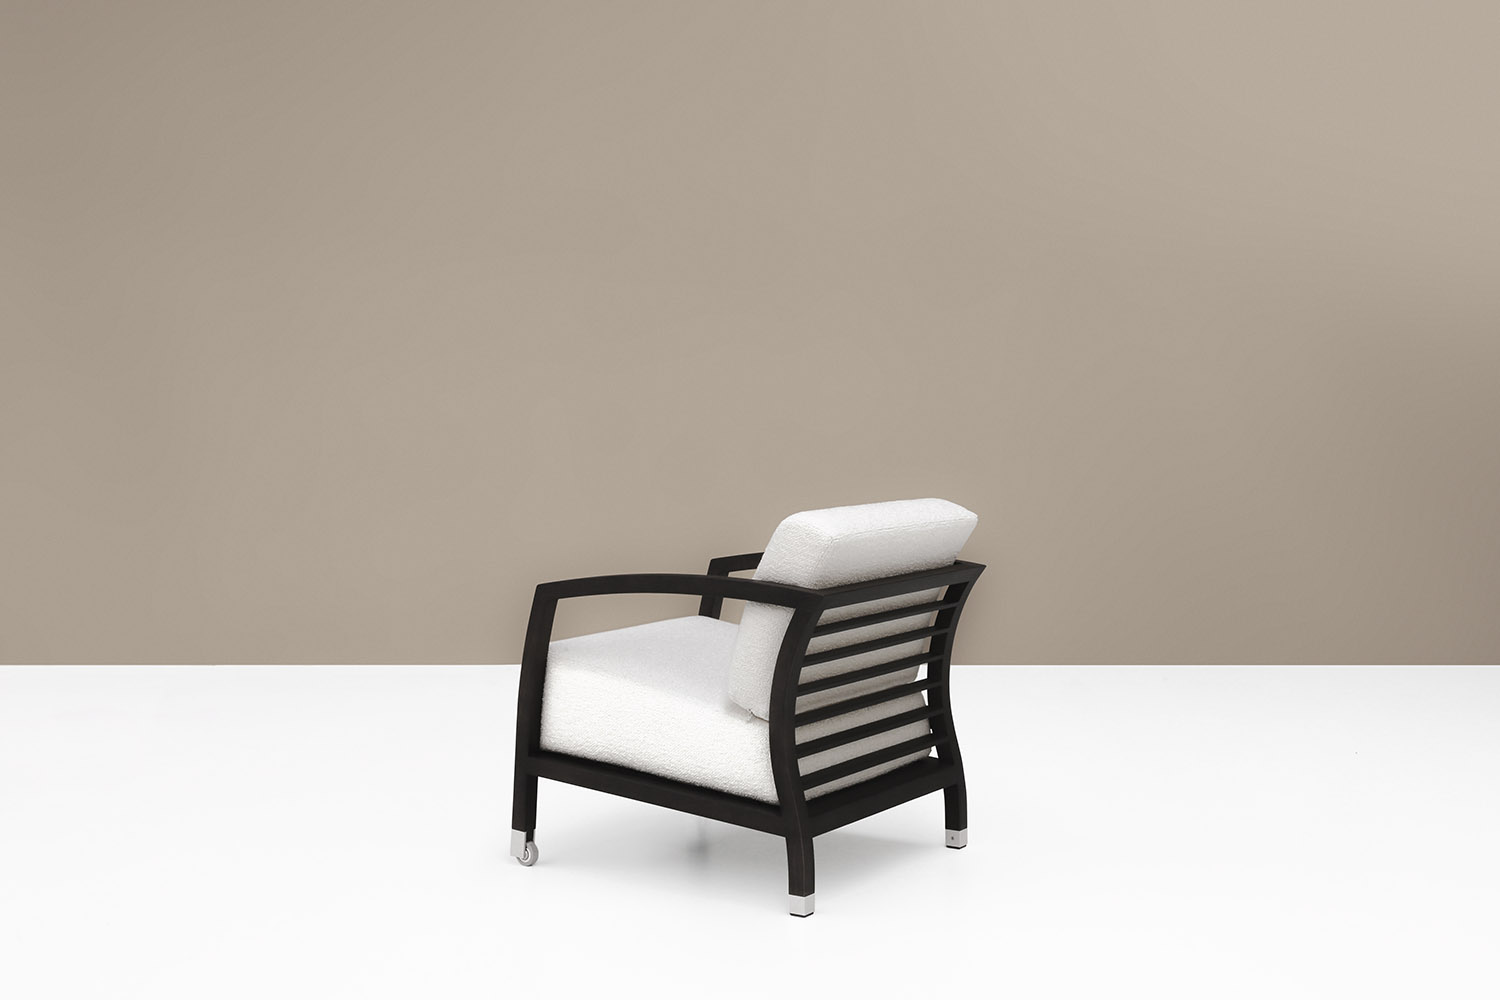 Tumblr Sessel Stua Armchair With Wooden Frame Malena